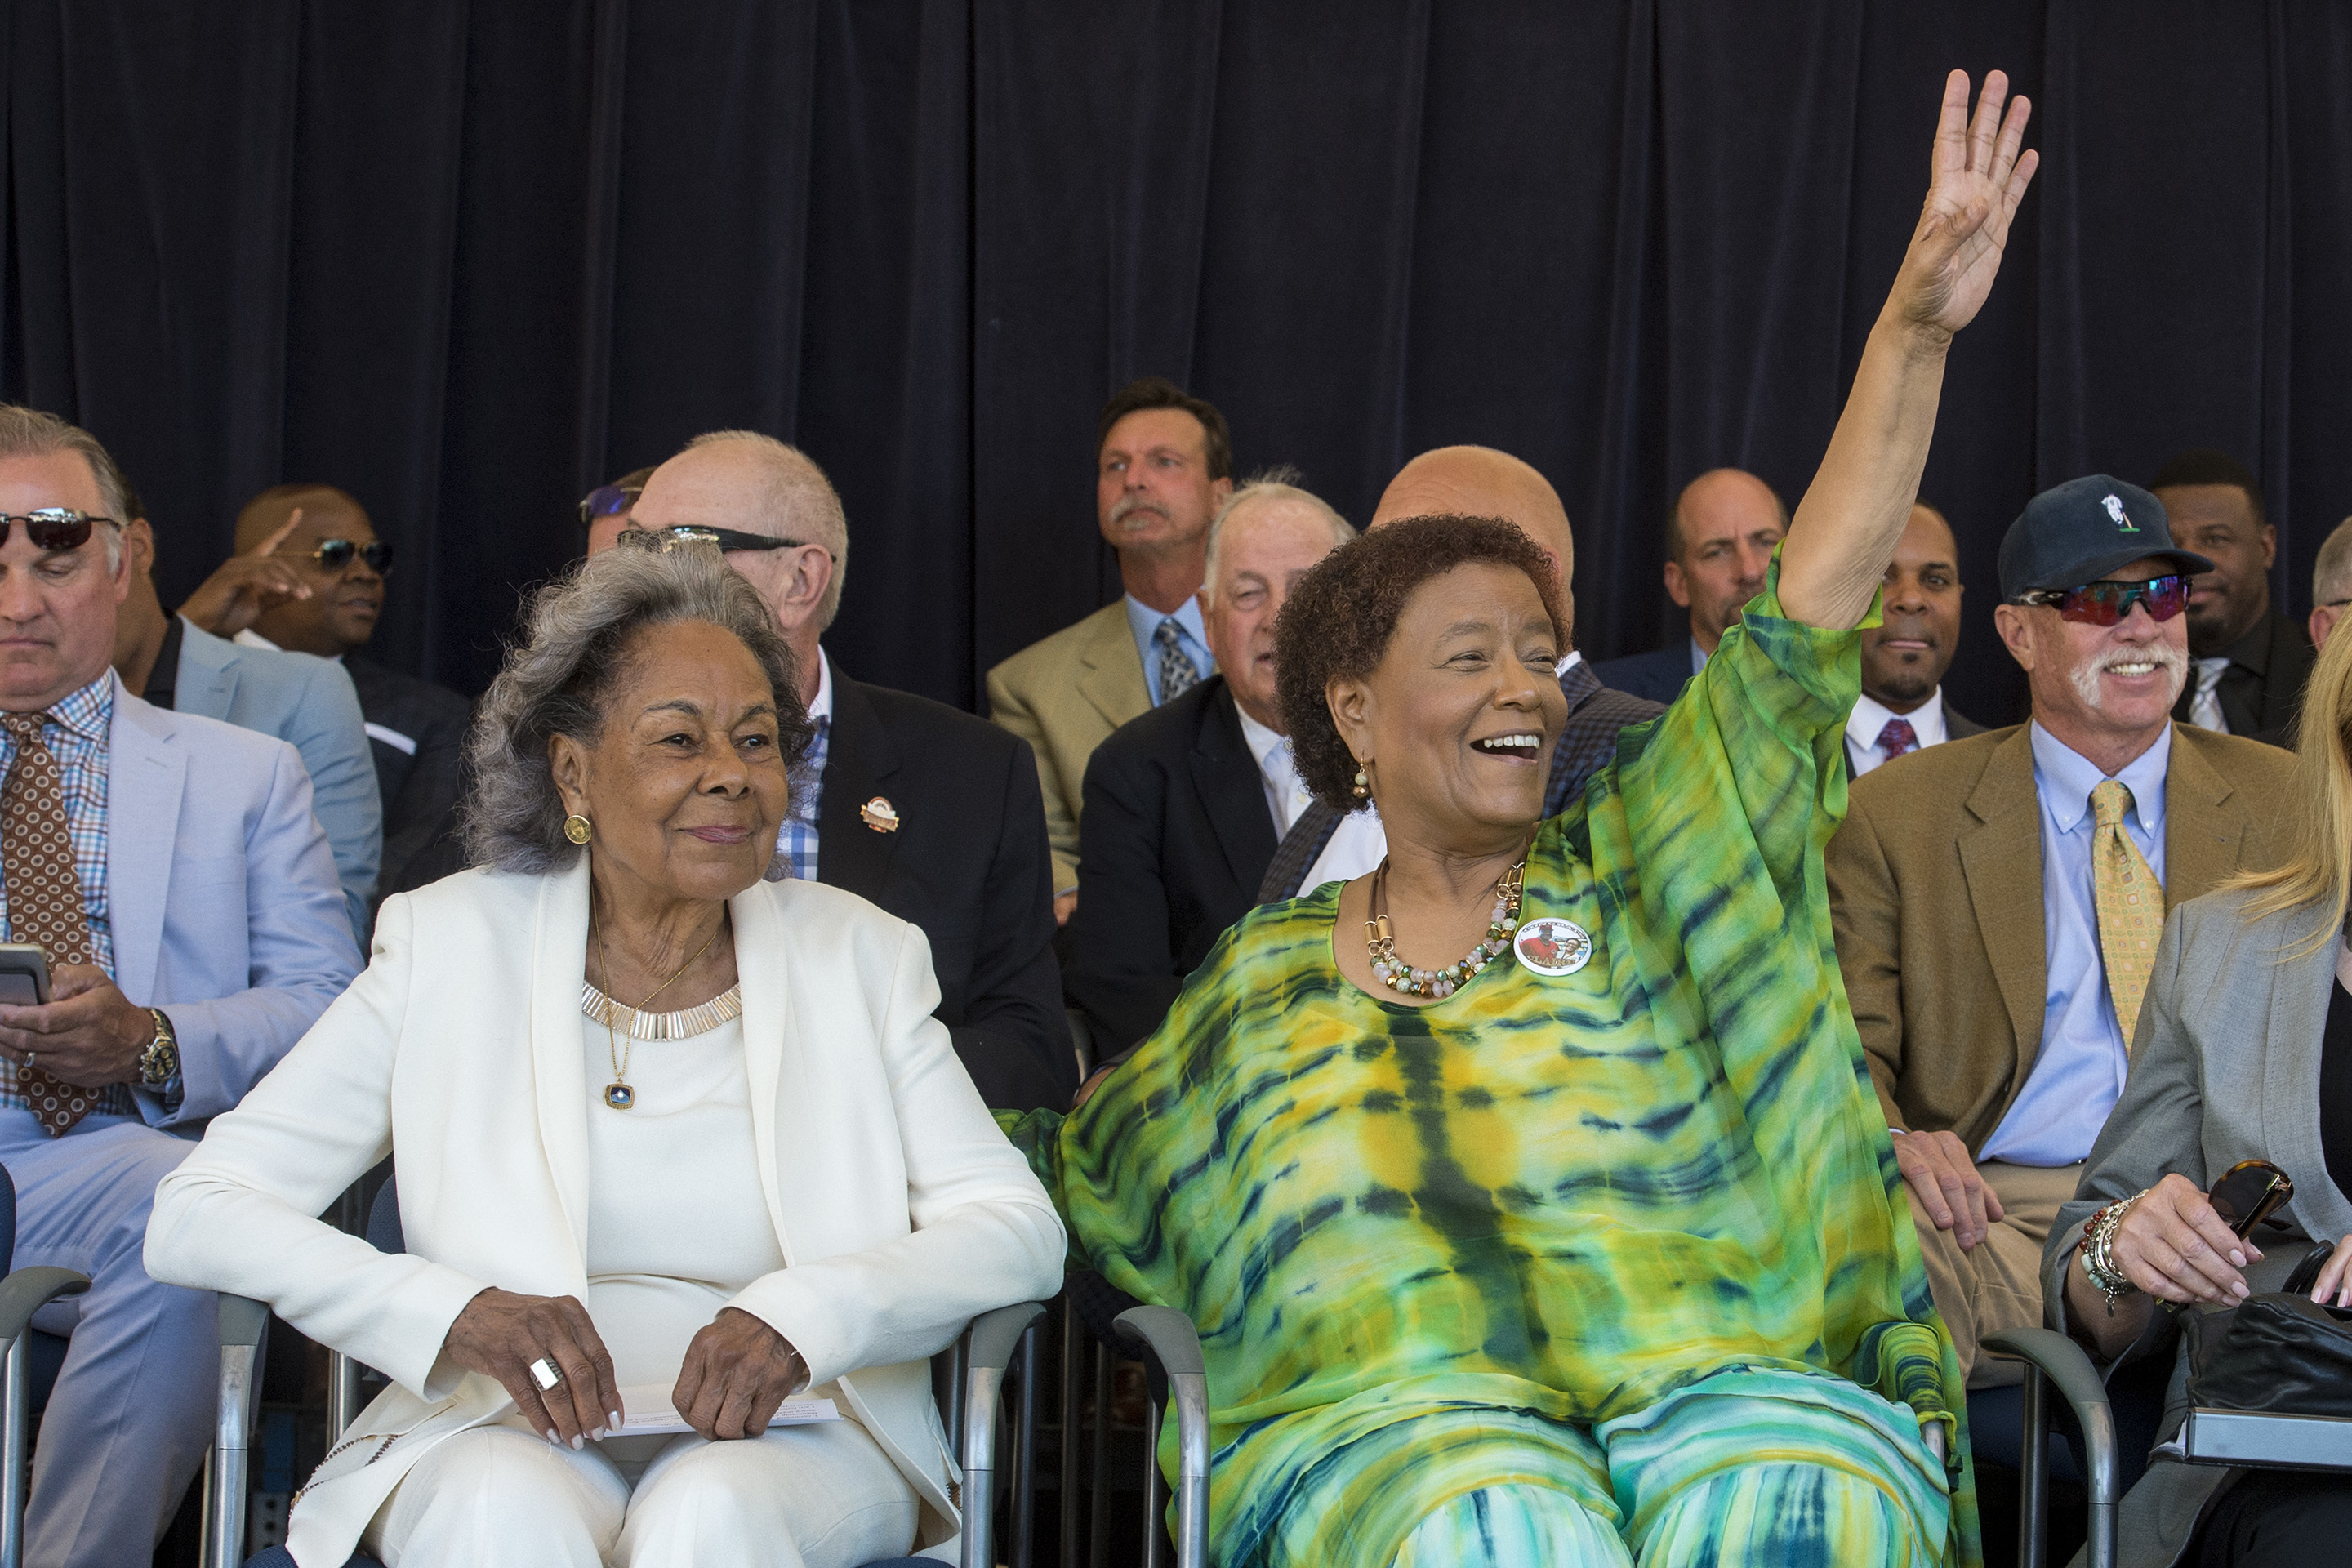 """Claire Smith (right) waves to family and friends gathered to see her accept the J.G. Taylor Spink Award from the Baseball Hall of Fame at Doubleday Field in Cooperstown, NY, July 29, 2017. At left is Rachel Robinson, the widow of famed player Jackie Robinson, who was given the John J. """"Buck"""" O'Neil Lifetime Achievement Award."""